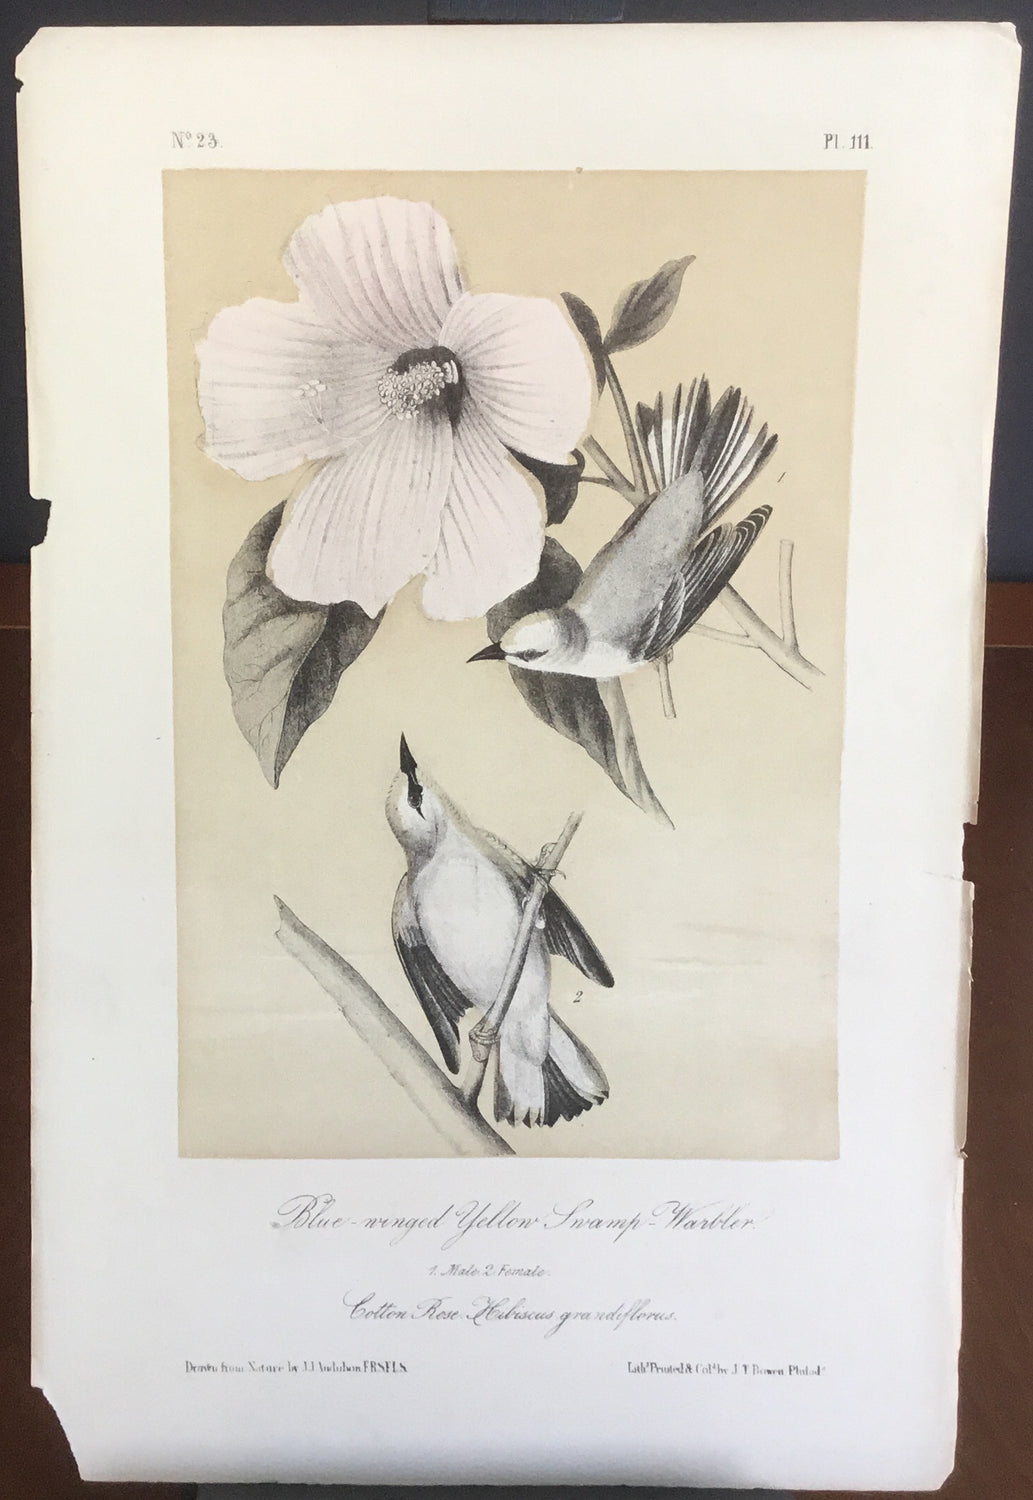 Audubon Octavo Blue-winged Yellow Swamp Warbler (2), plate 111, uncolored test sheet, 7 x 11